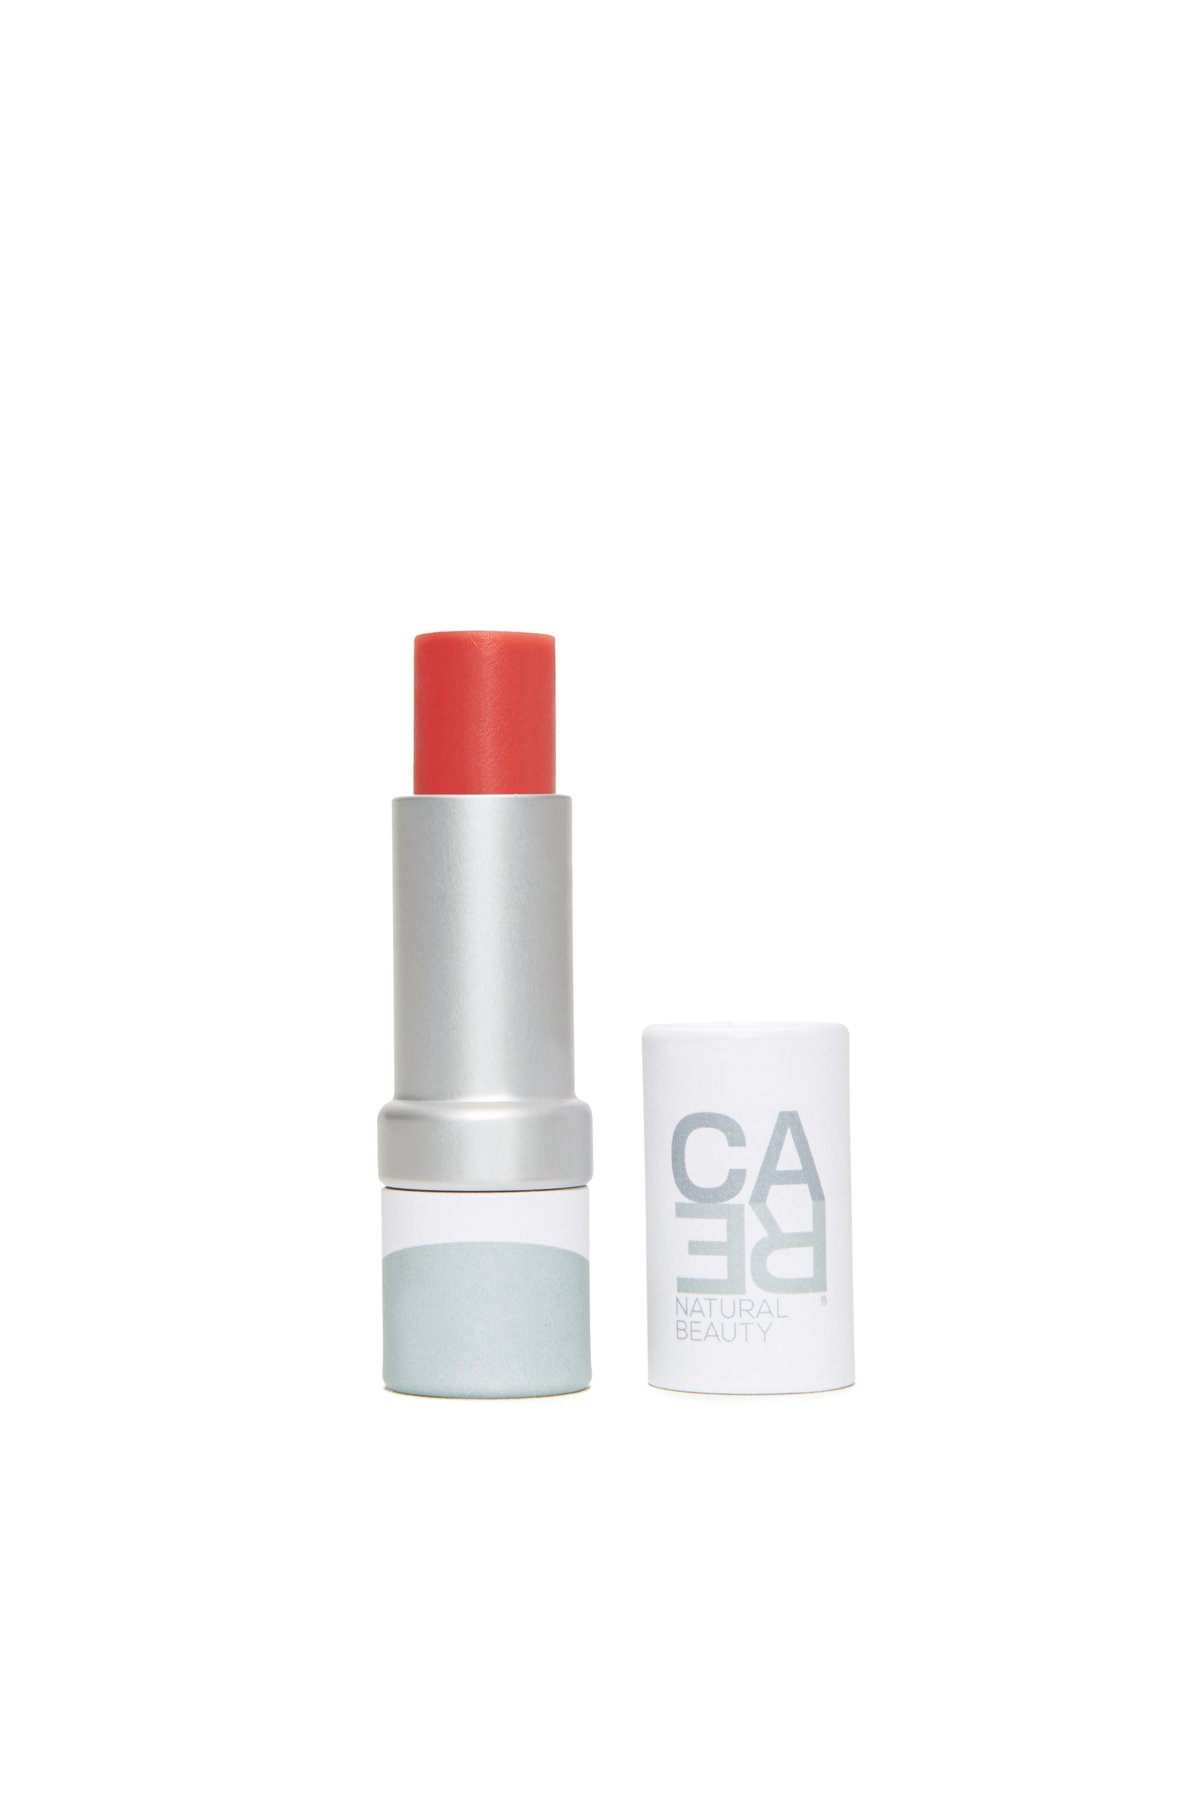 LipCARE Vogue Wellness Granadine